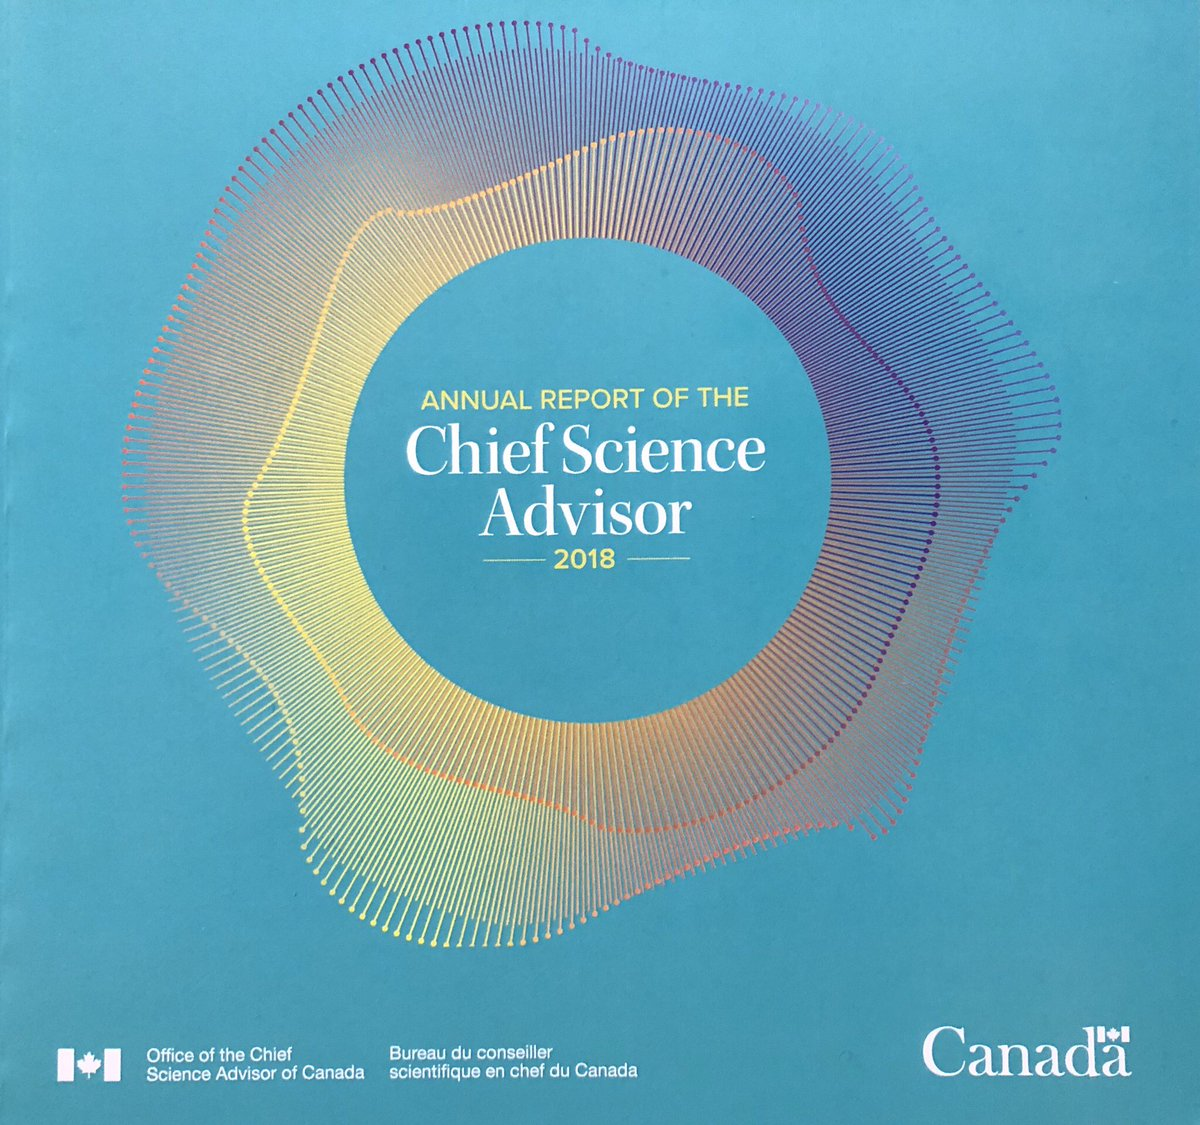 The @ChiefSciCan's first annual report is now available!  Dr. Nemer's work has had impacts across the federal government, including on #ClimateAction.   Find out what else has been achieved over the last year: http://ow.ly/Zszk50mYvop #CdnSci #CanadaSupportsScience